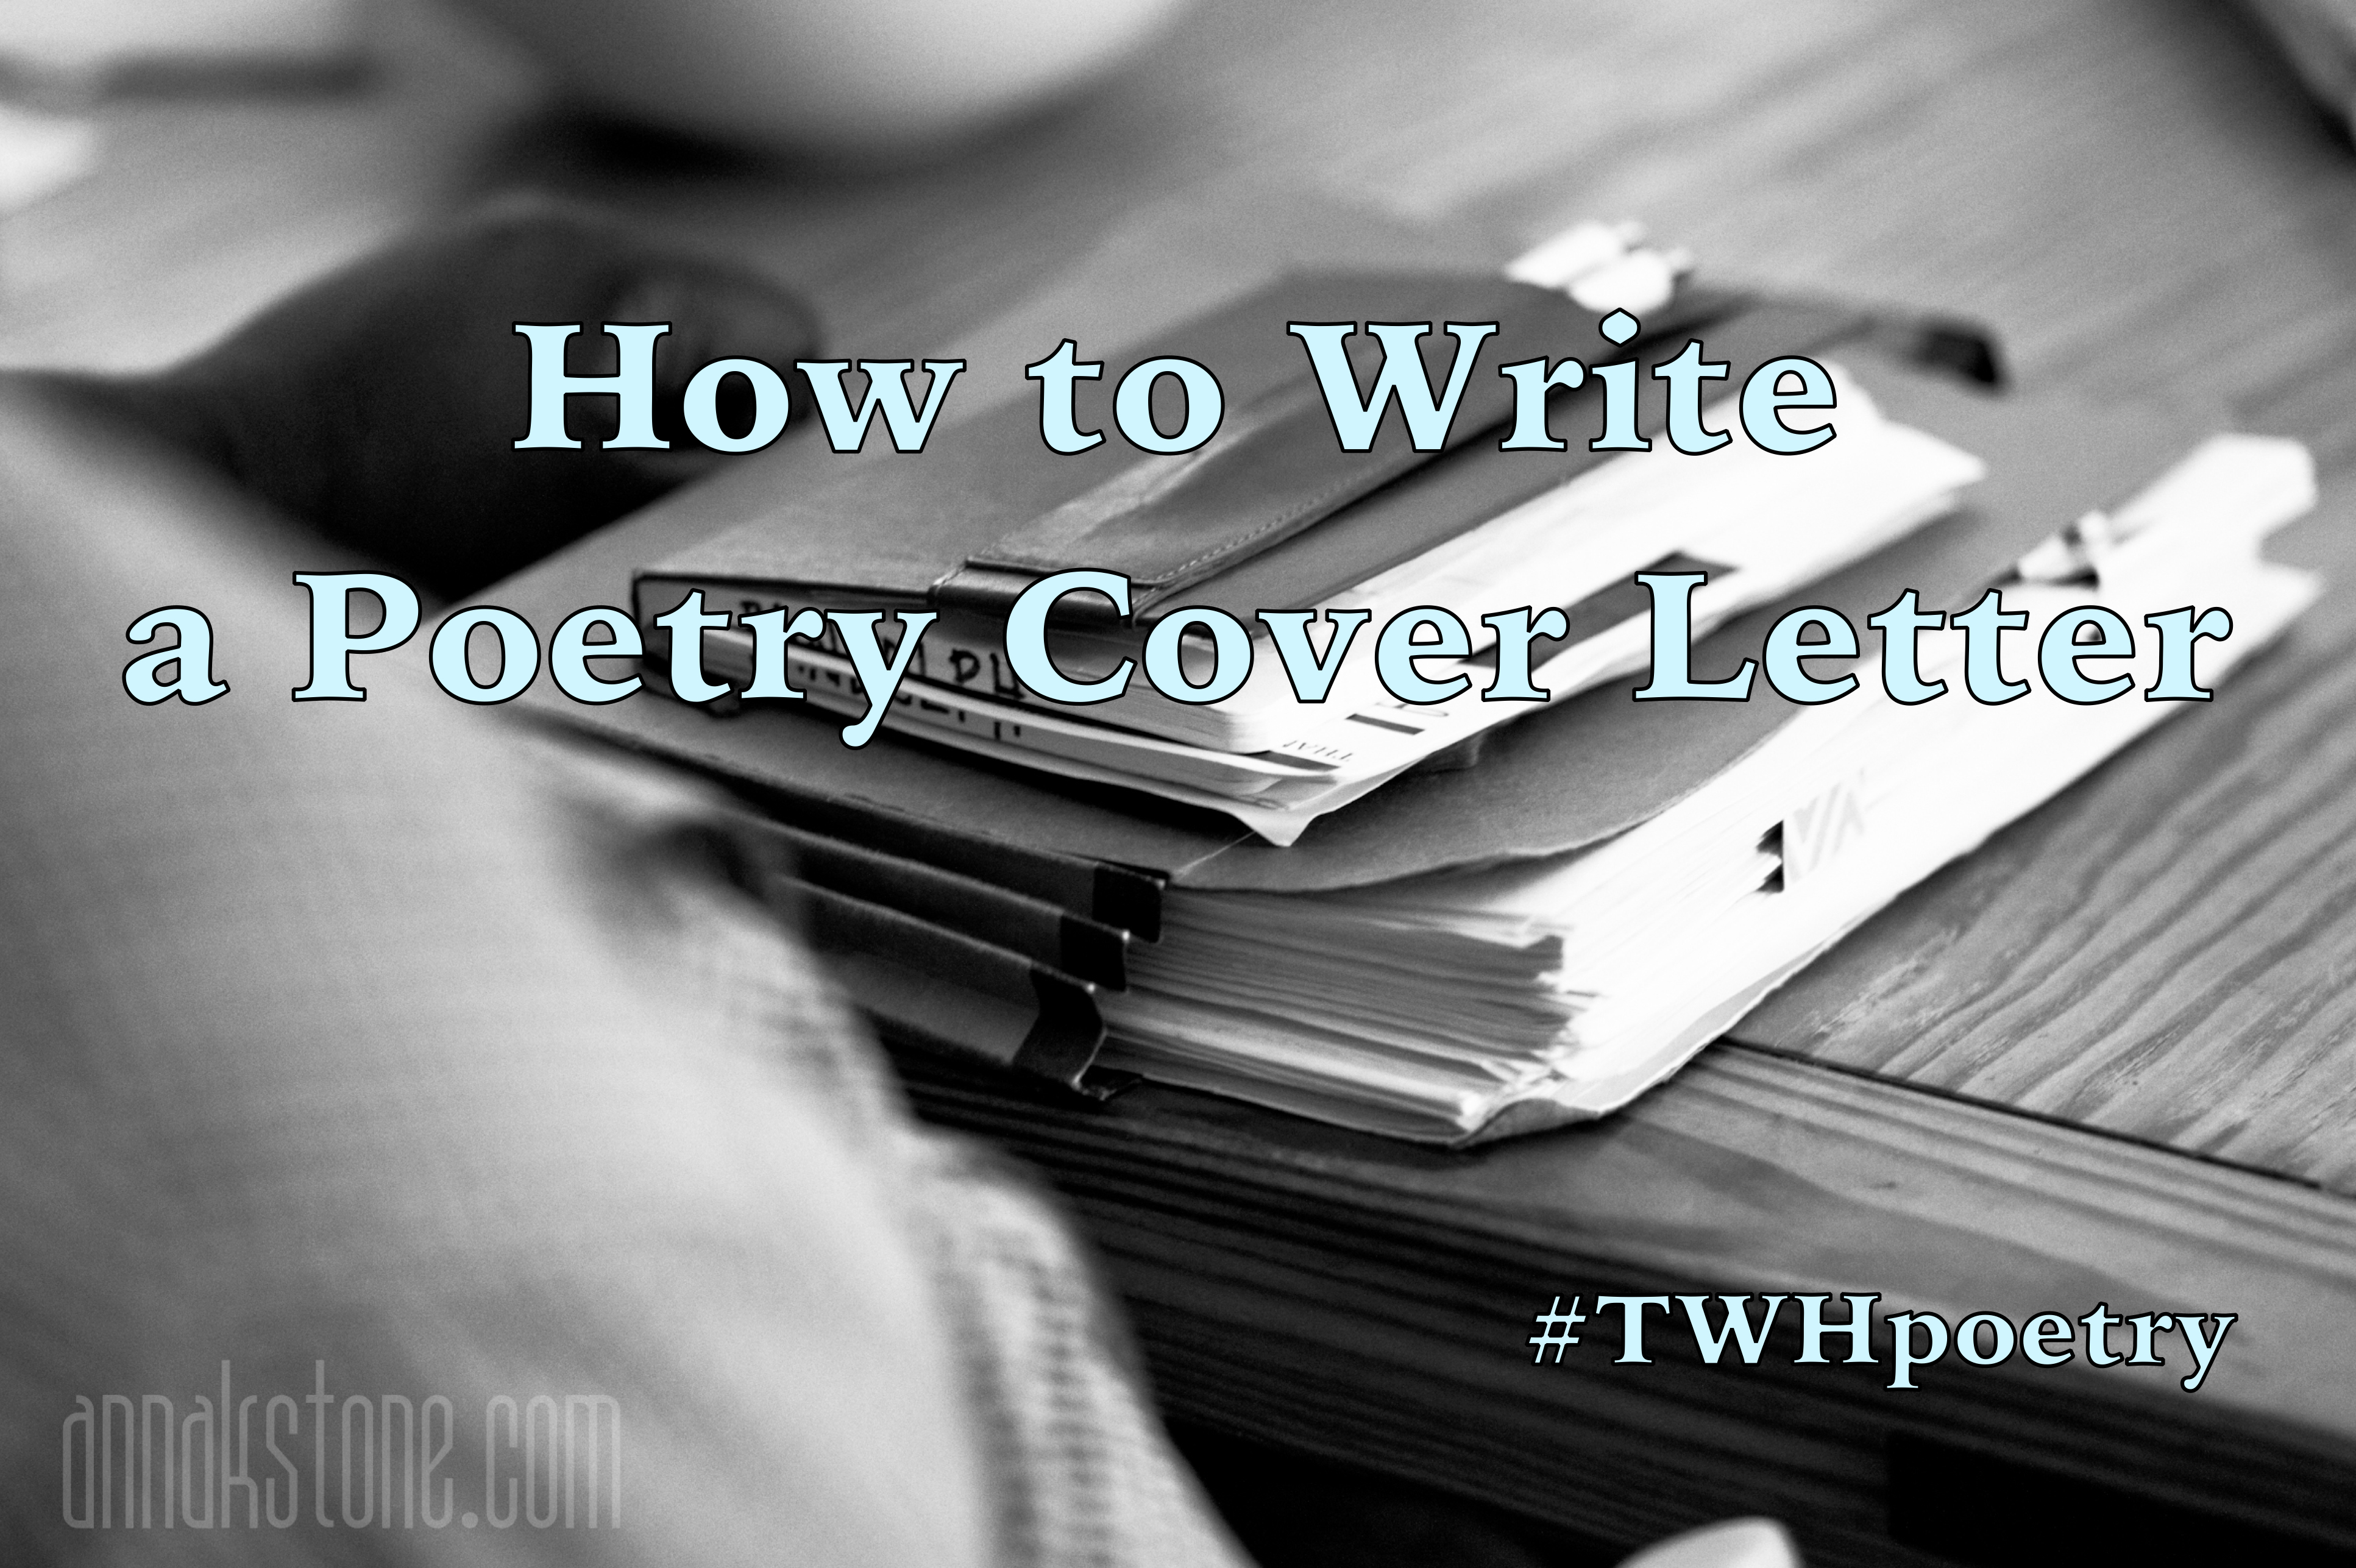 How to Write a Poetry Cover